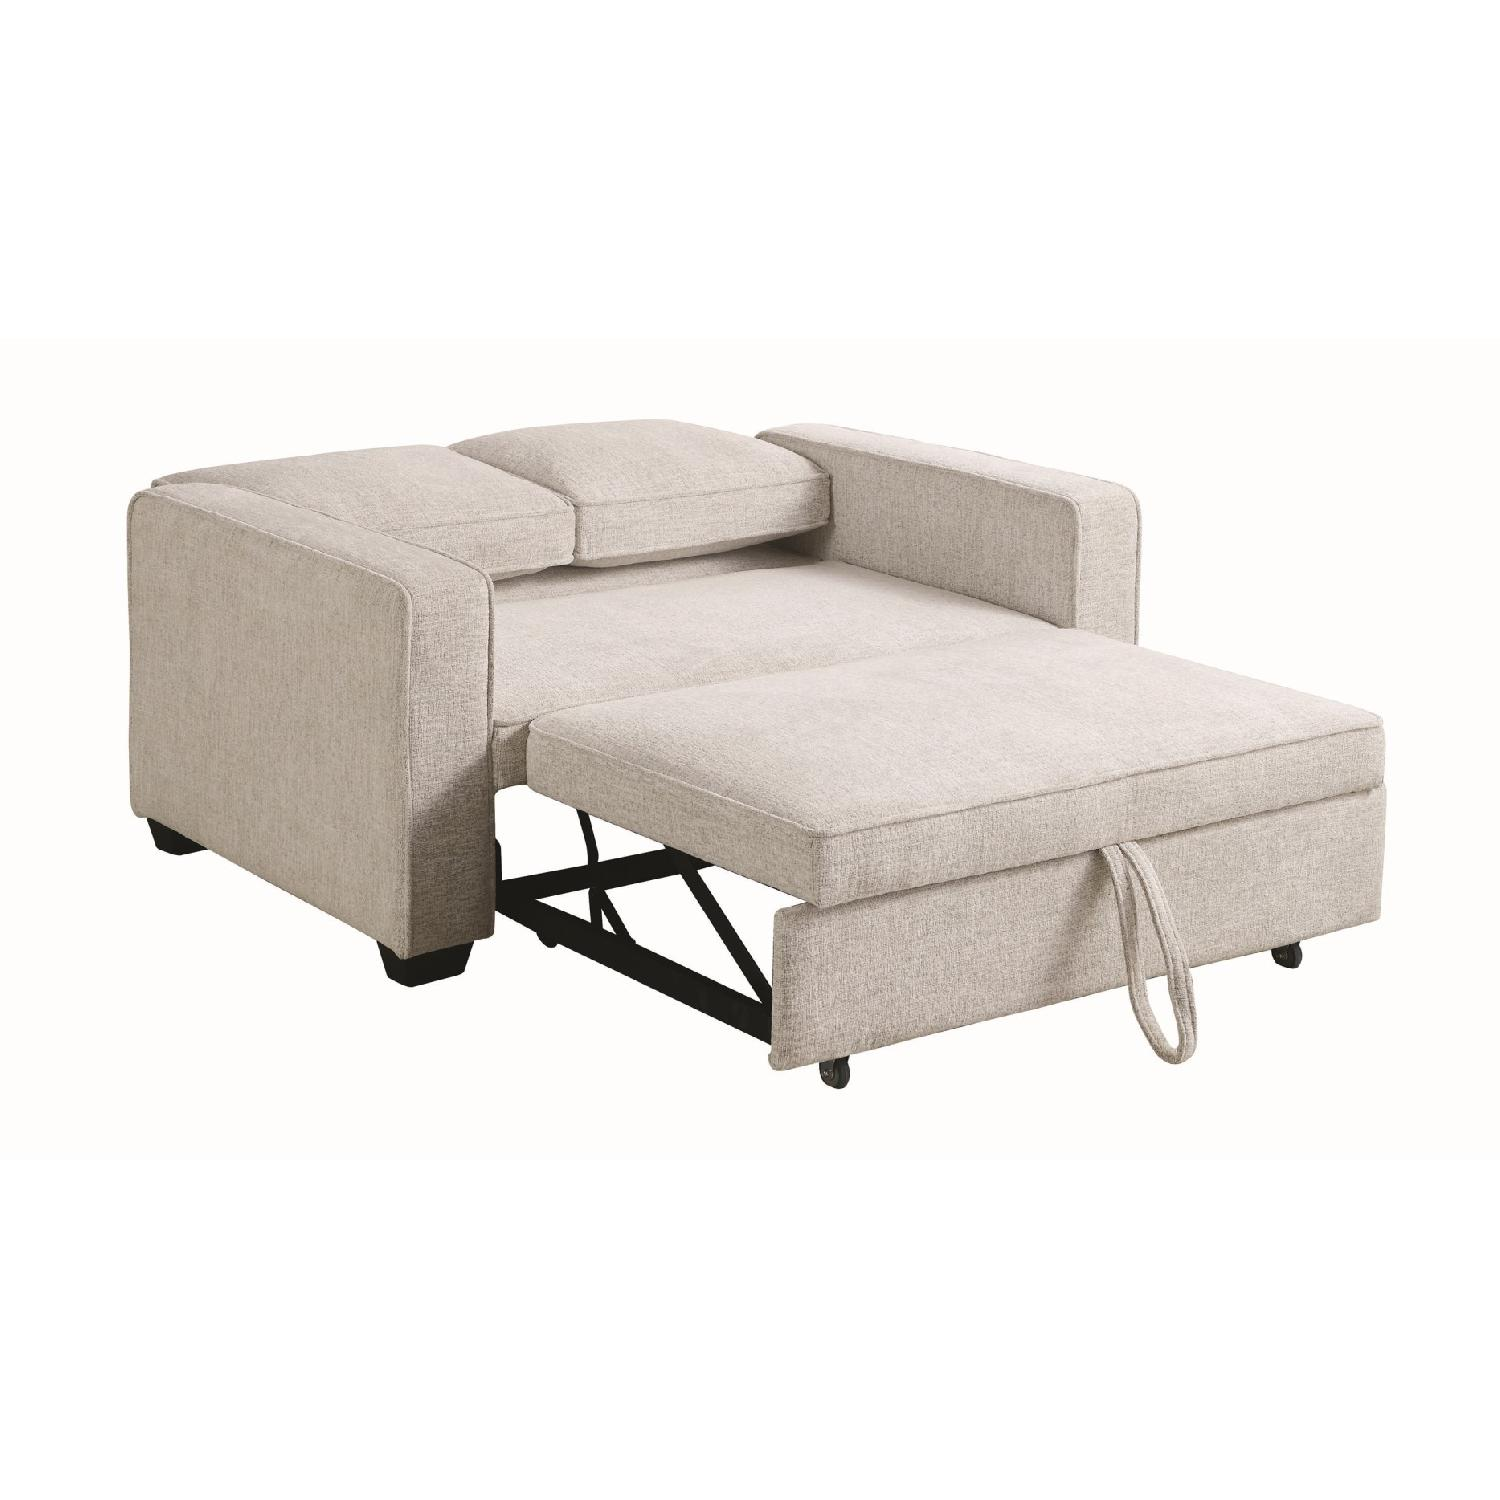 Compact Sofabed in Beige Chenille Fabric w/ Pull-Out Sleeper - image-1